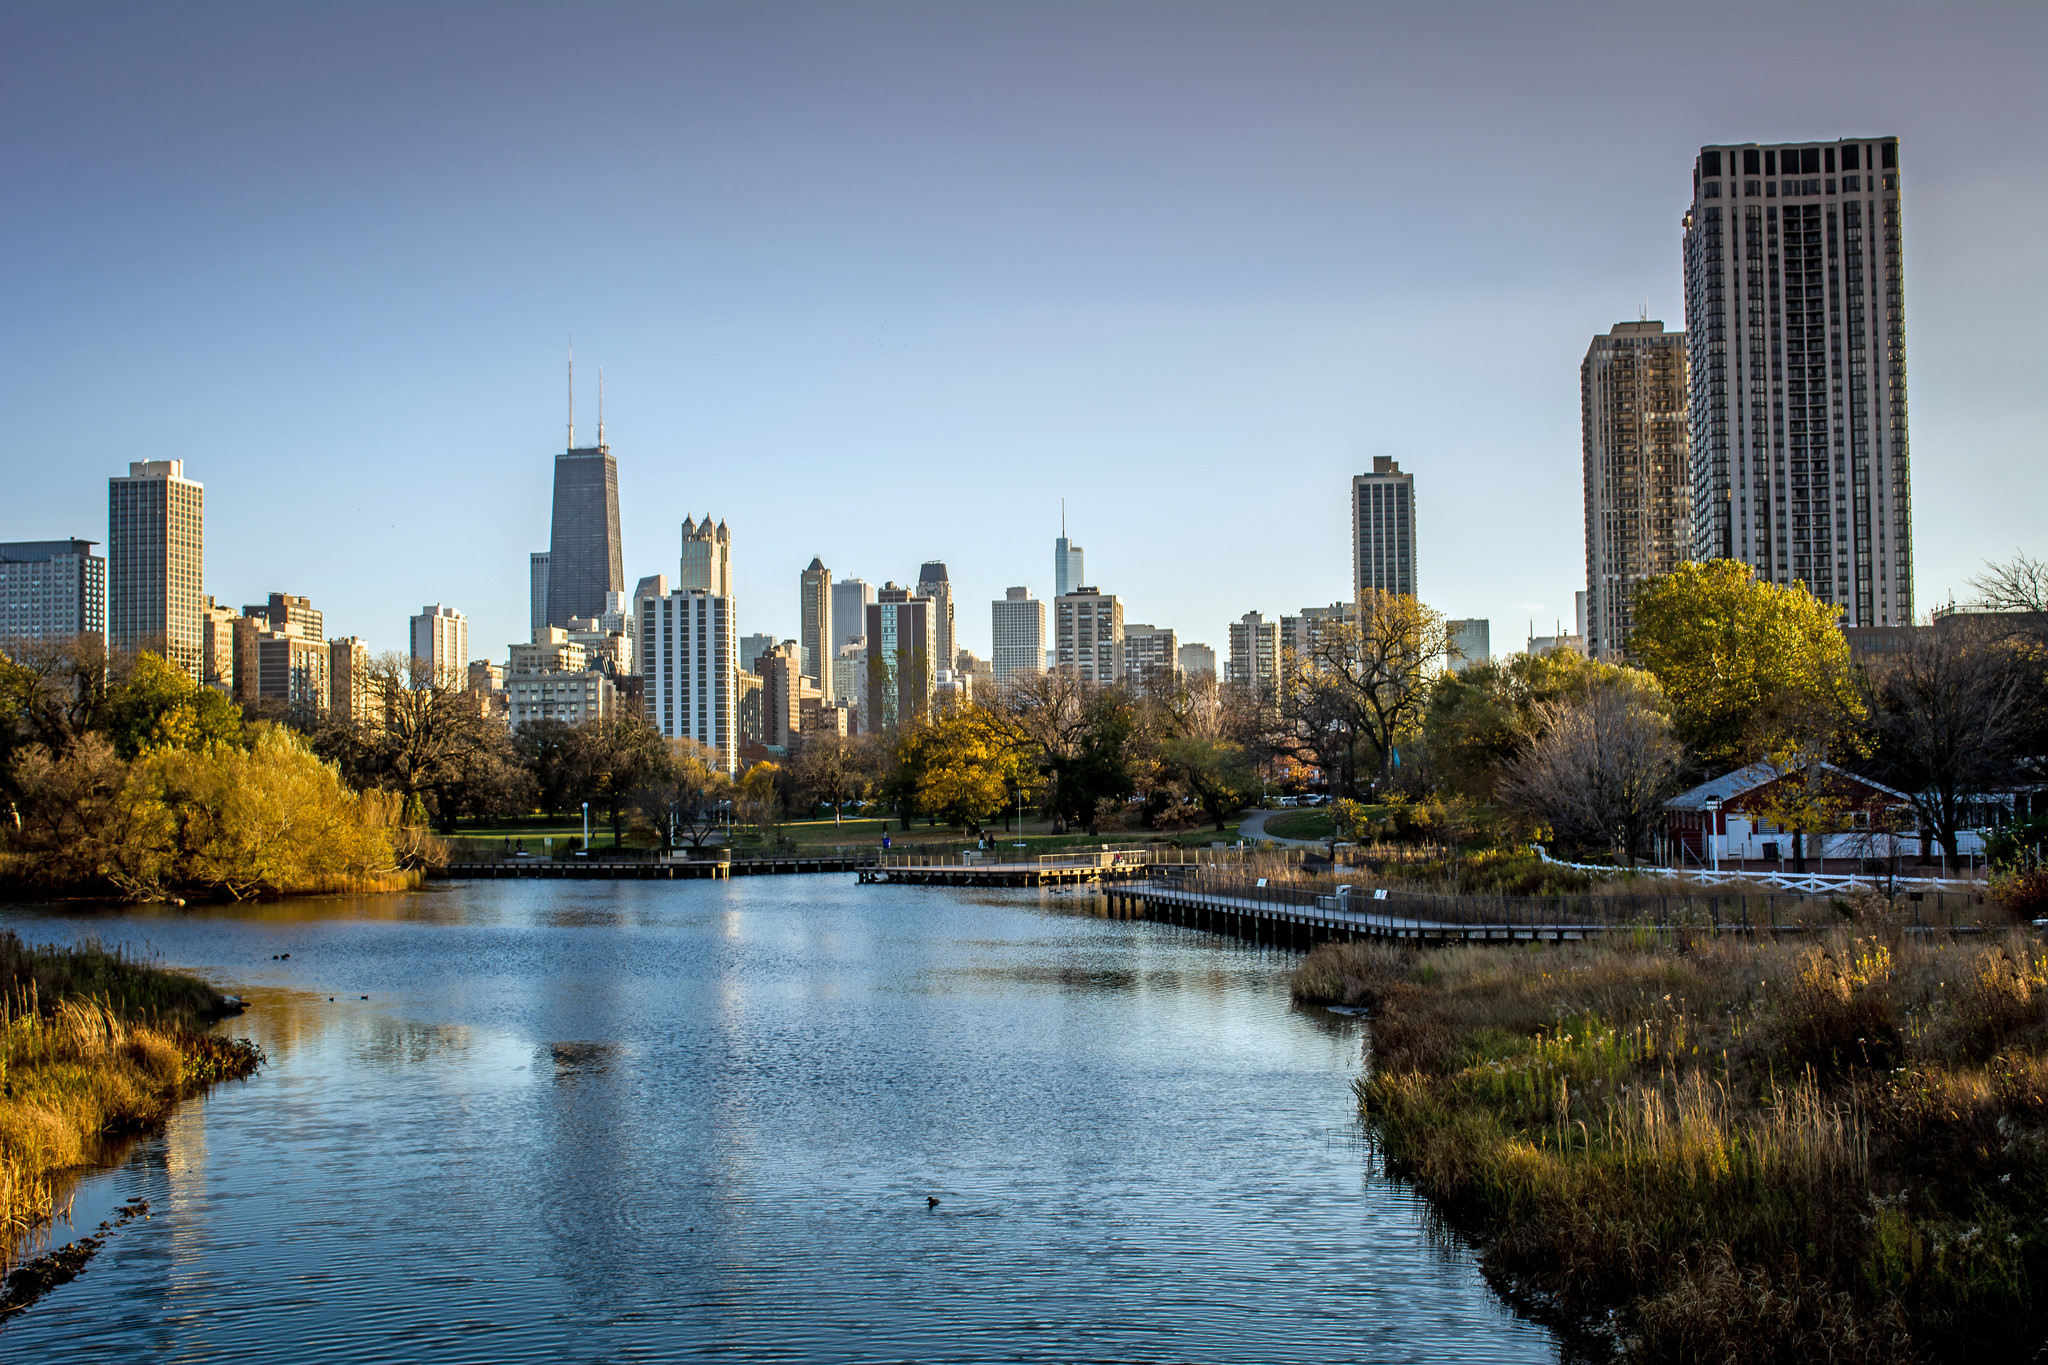 The 25 best Chicago attractions